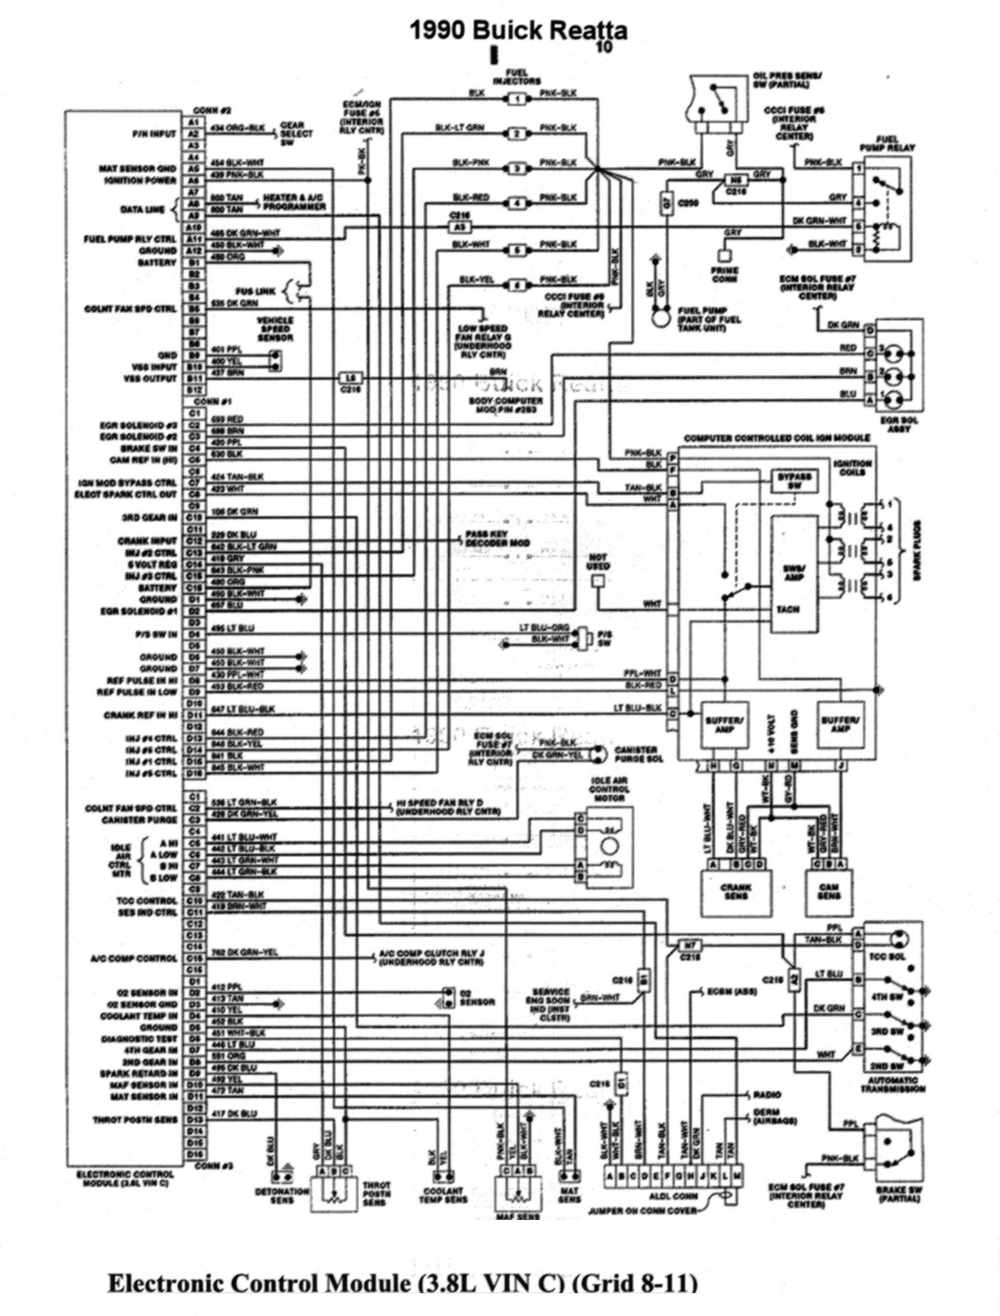 1987 Buick Lesabre Ignition Wiring Diagram Wiring Diagram For Free